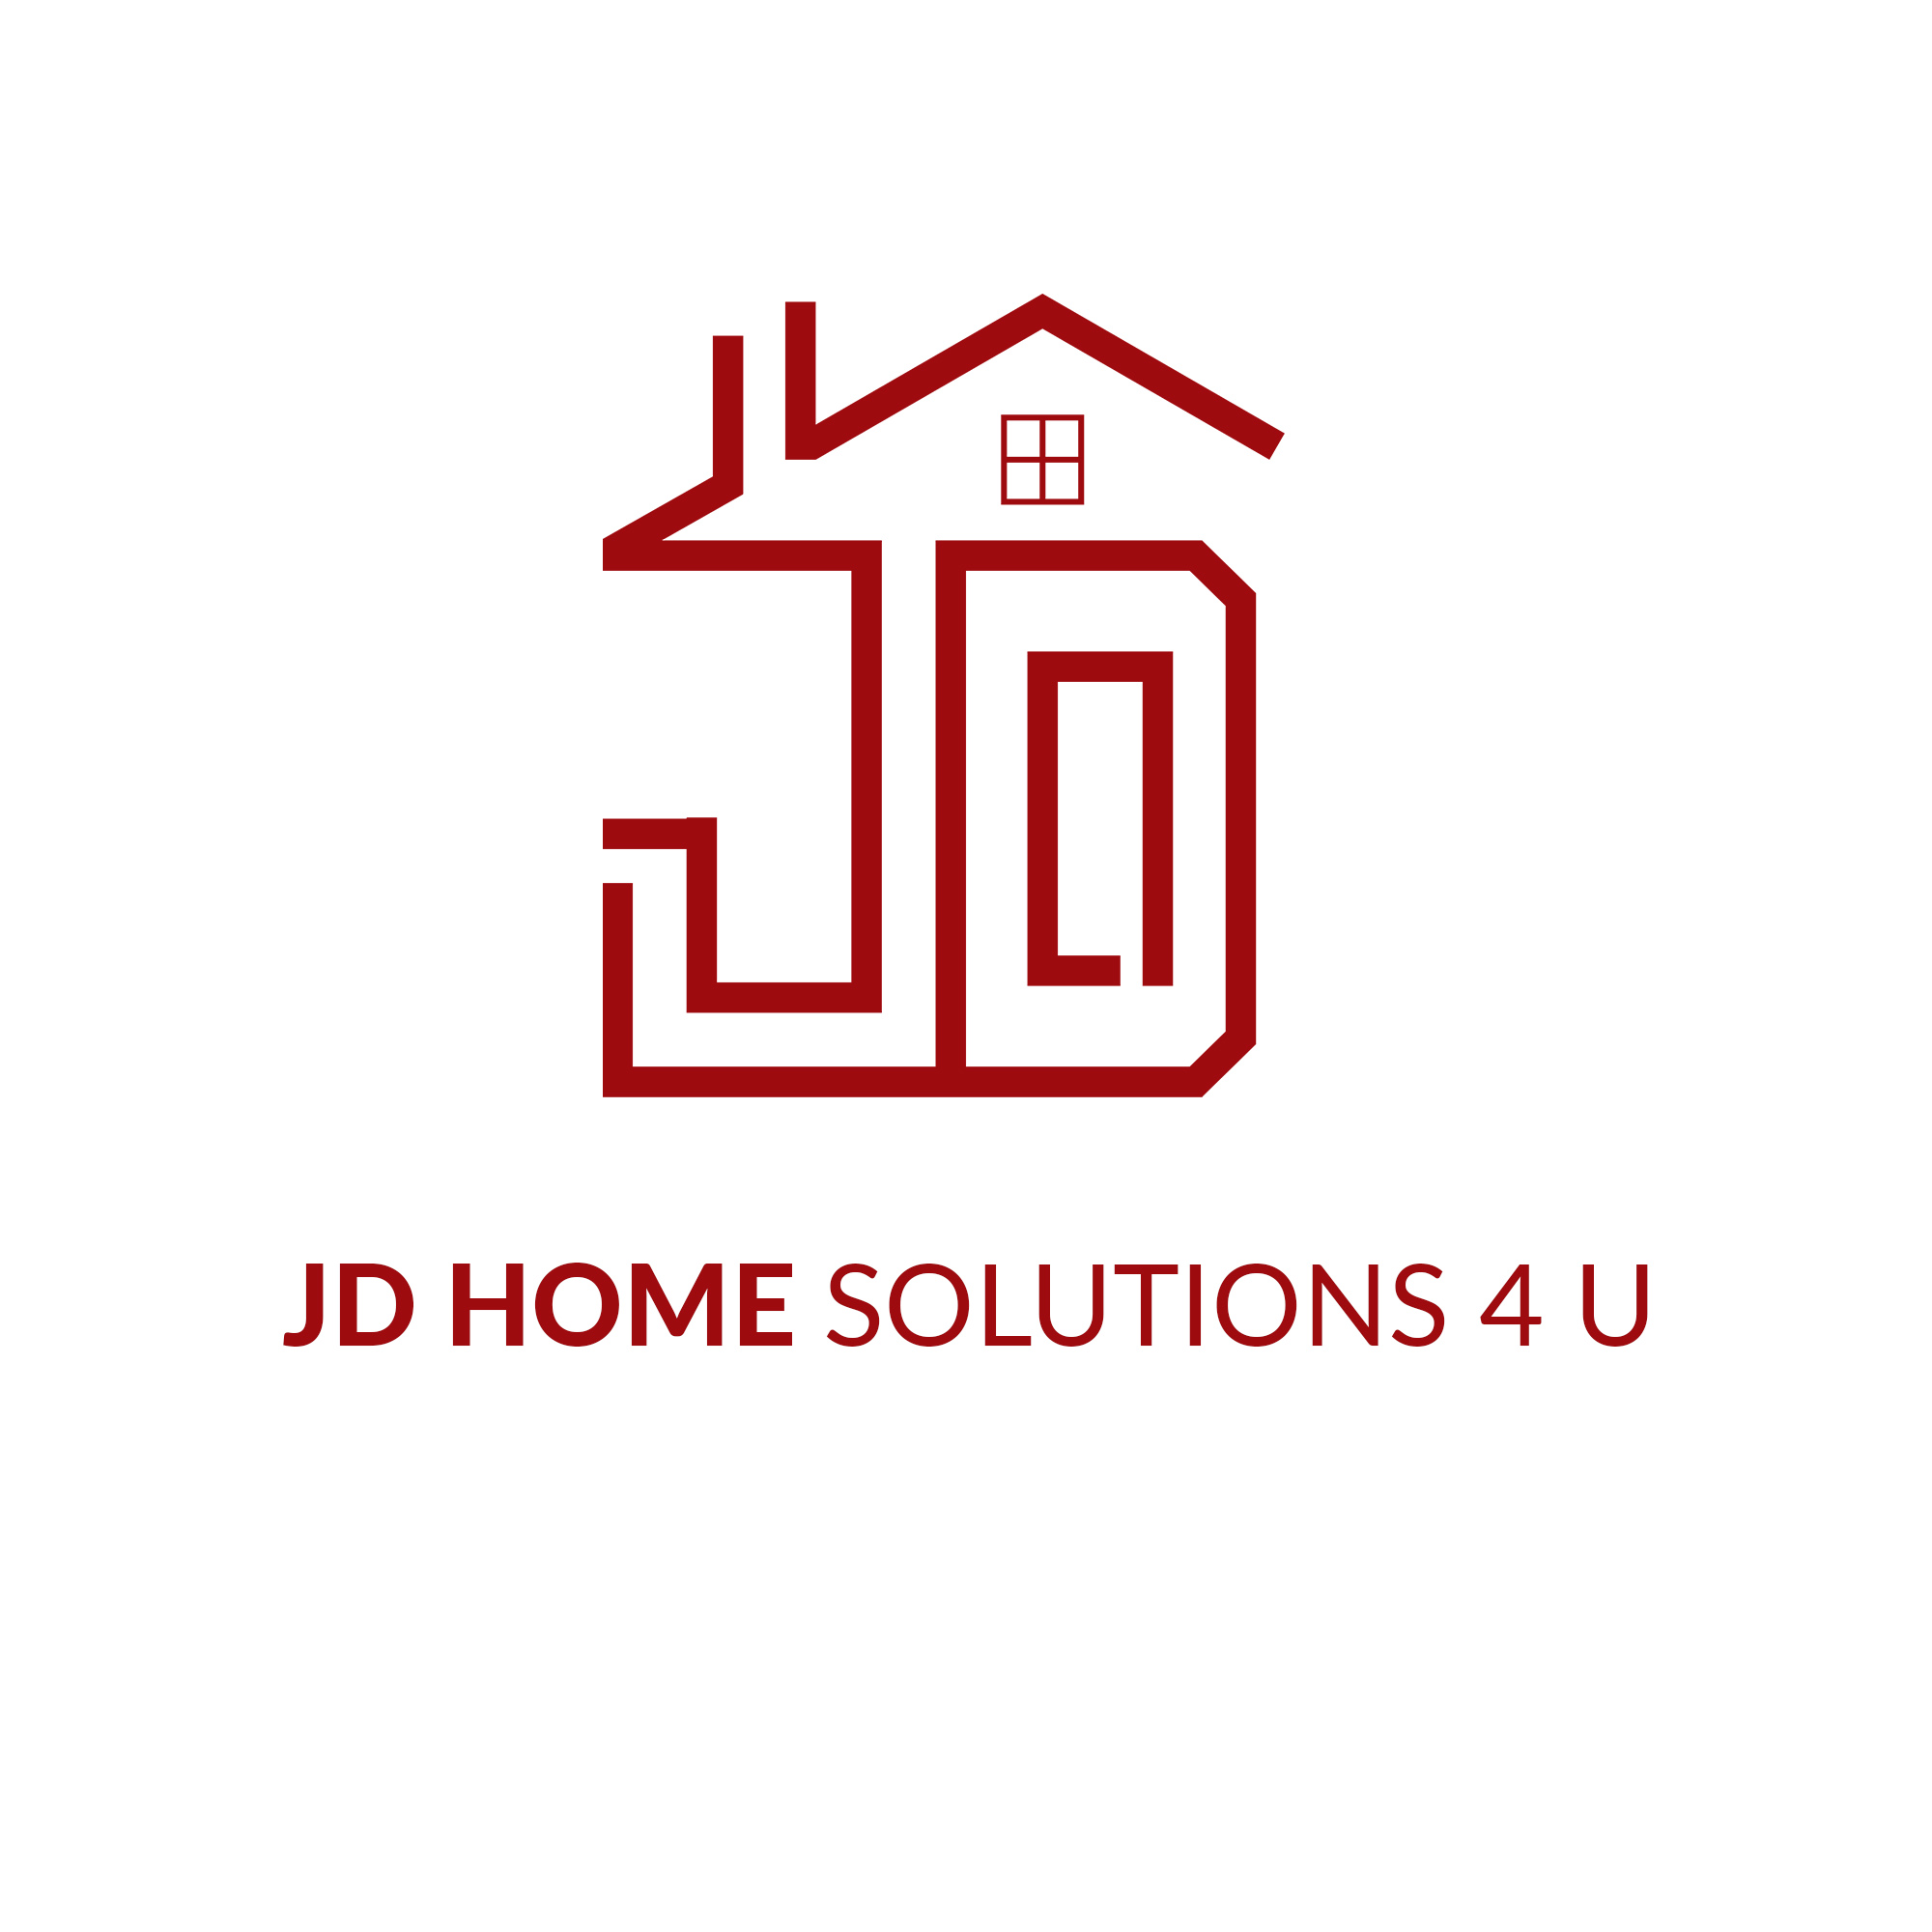 JD Home Solutions 4U